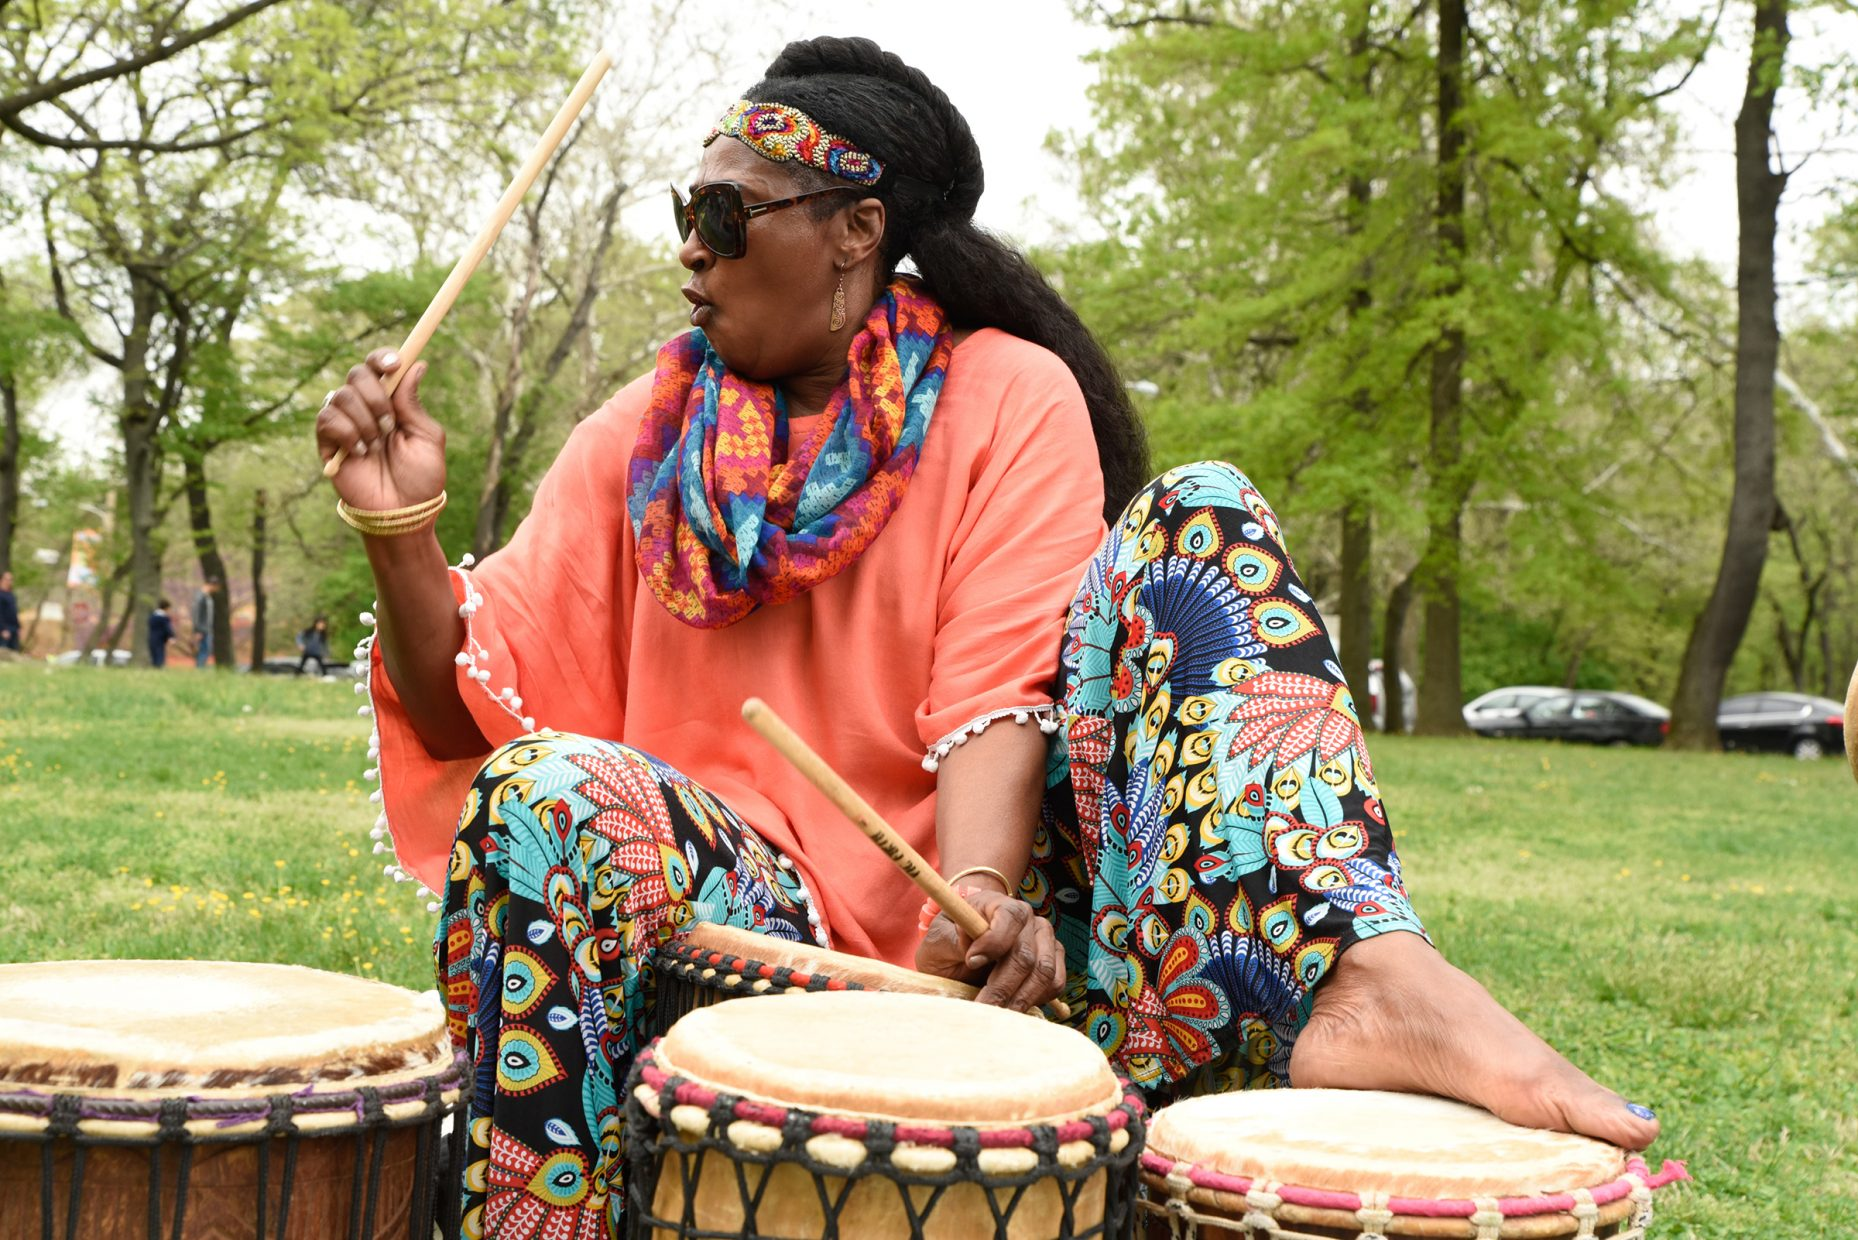 A woman plays the drums with her hands and feet outside.